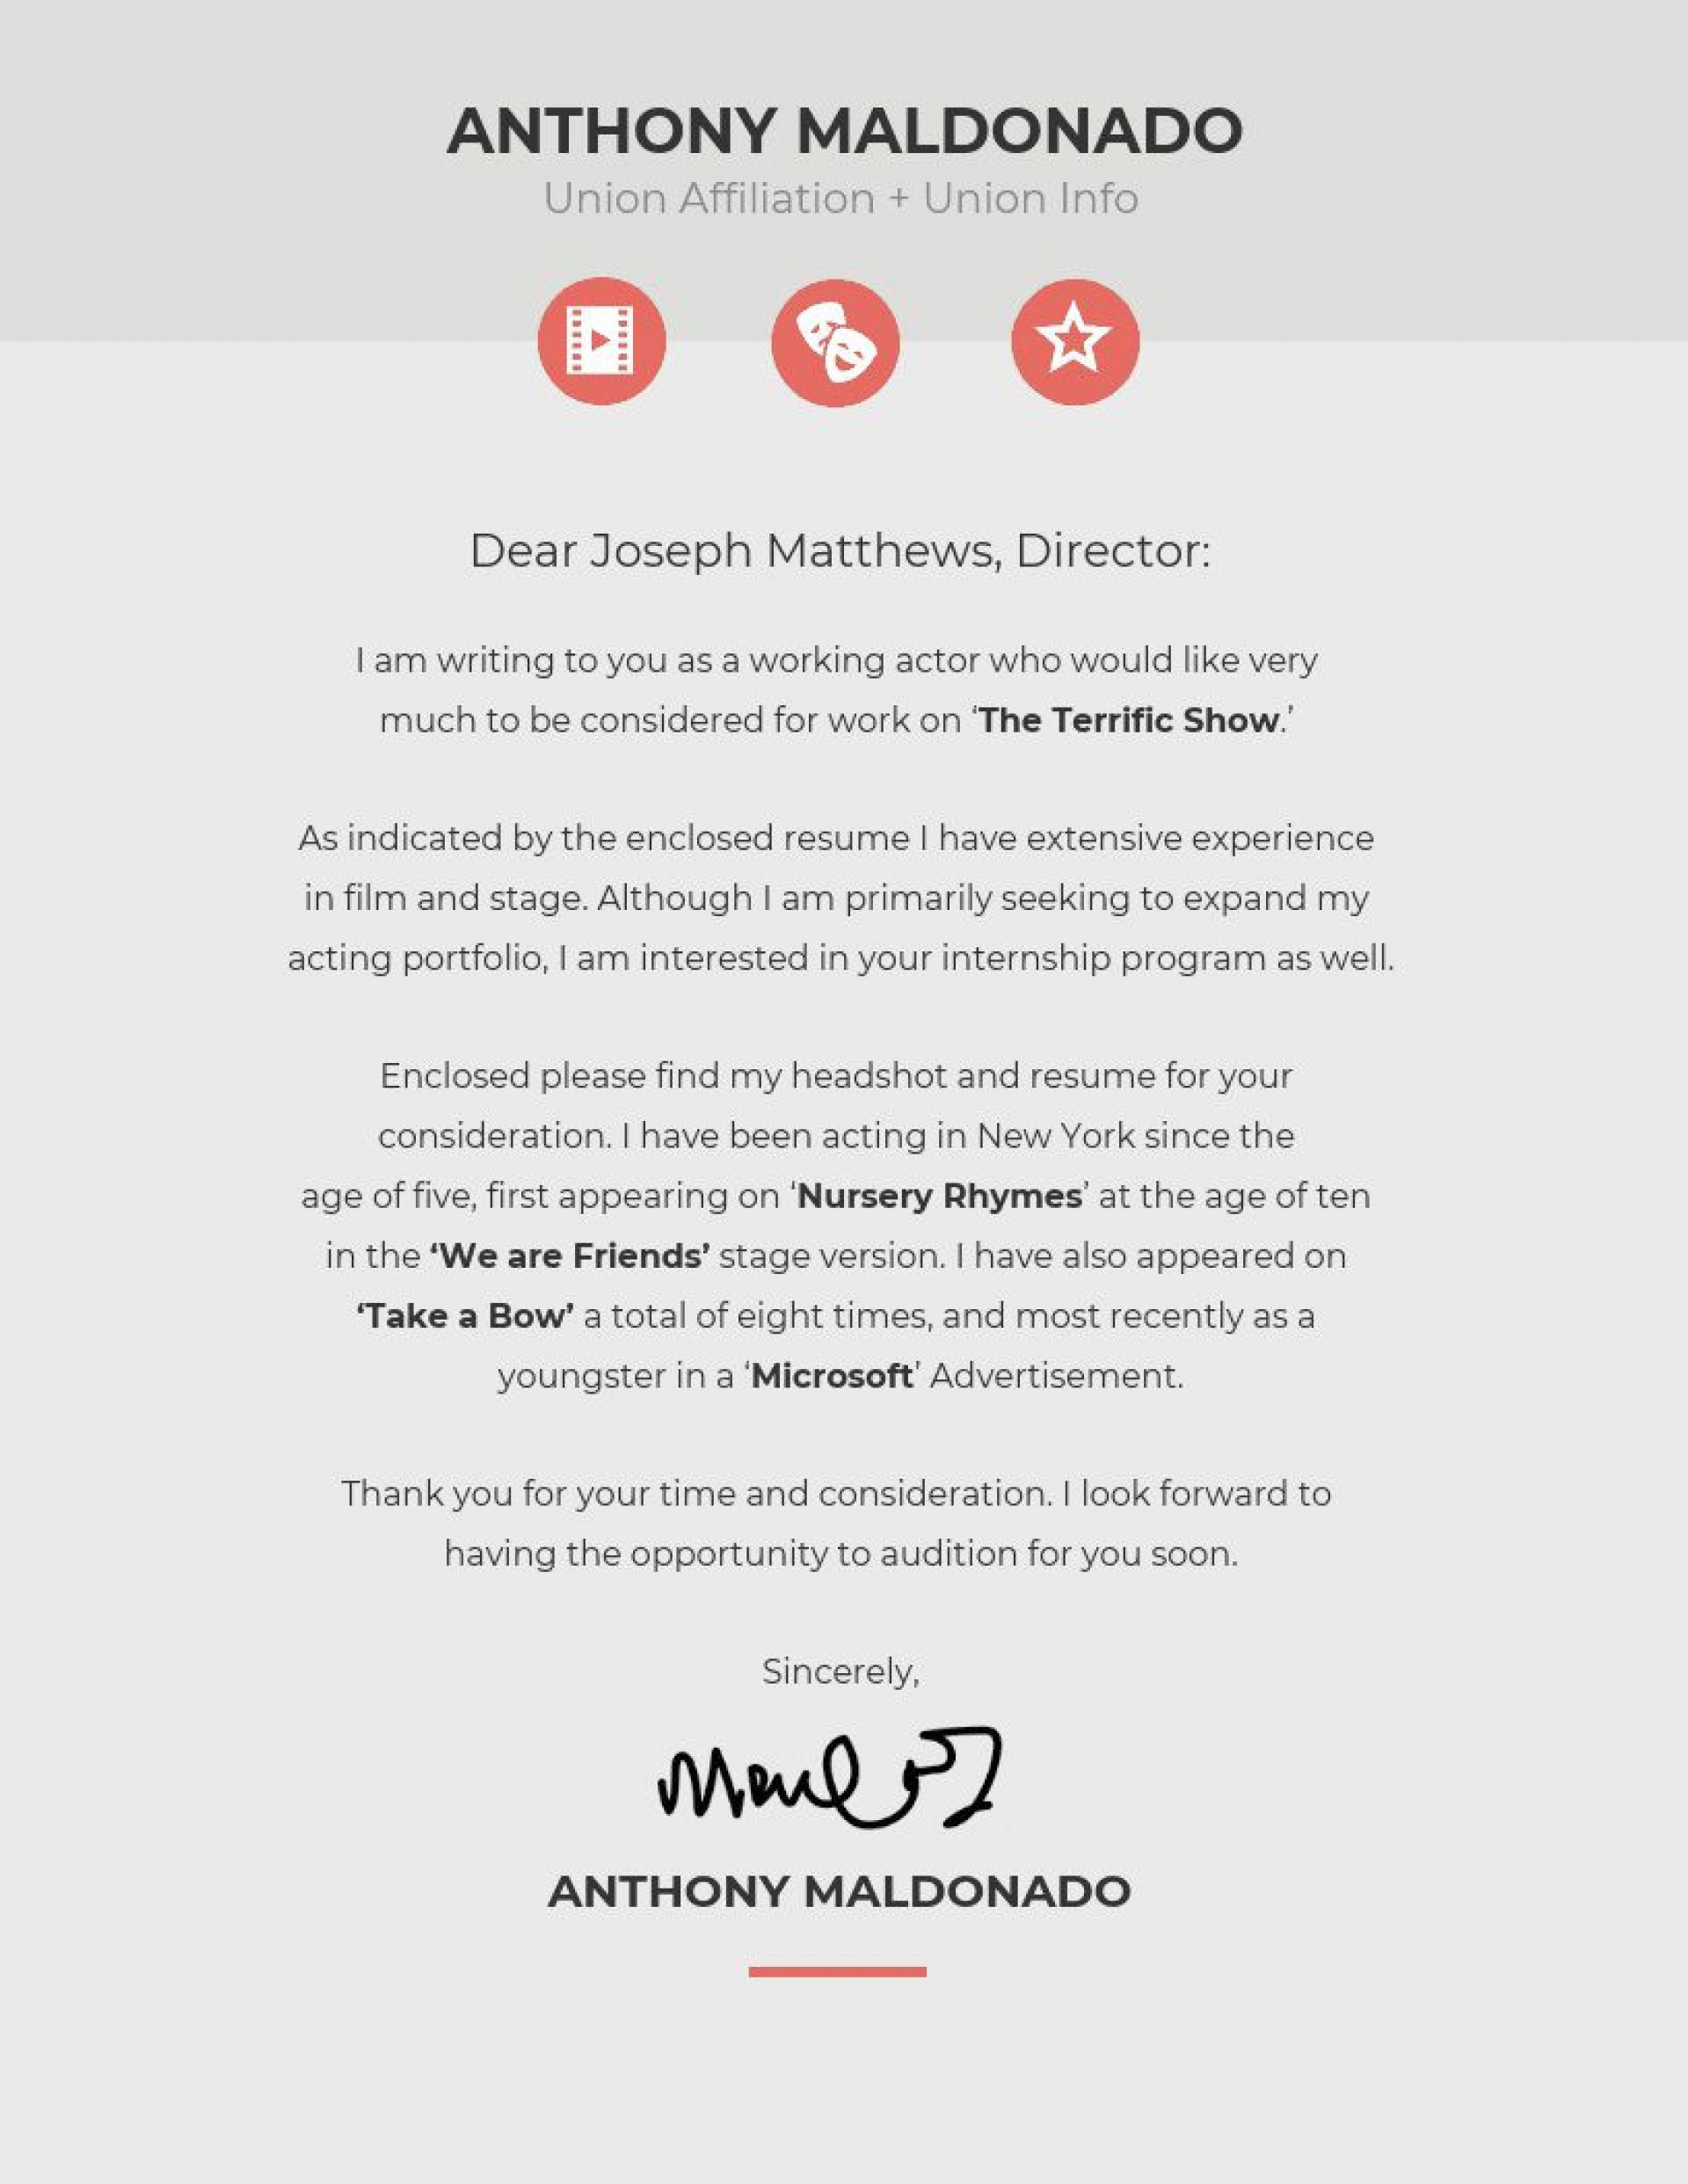 009 Magnificent Simple Cover Letter Template Image  For Resume Nz1920